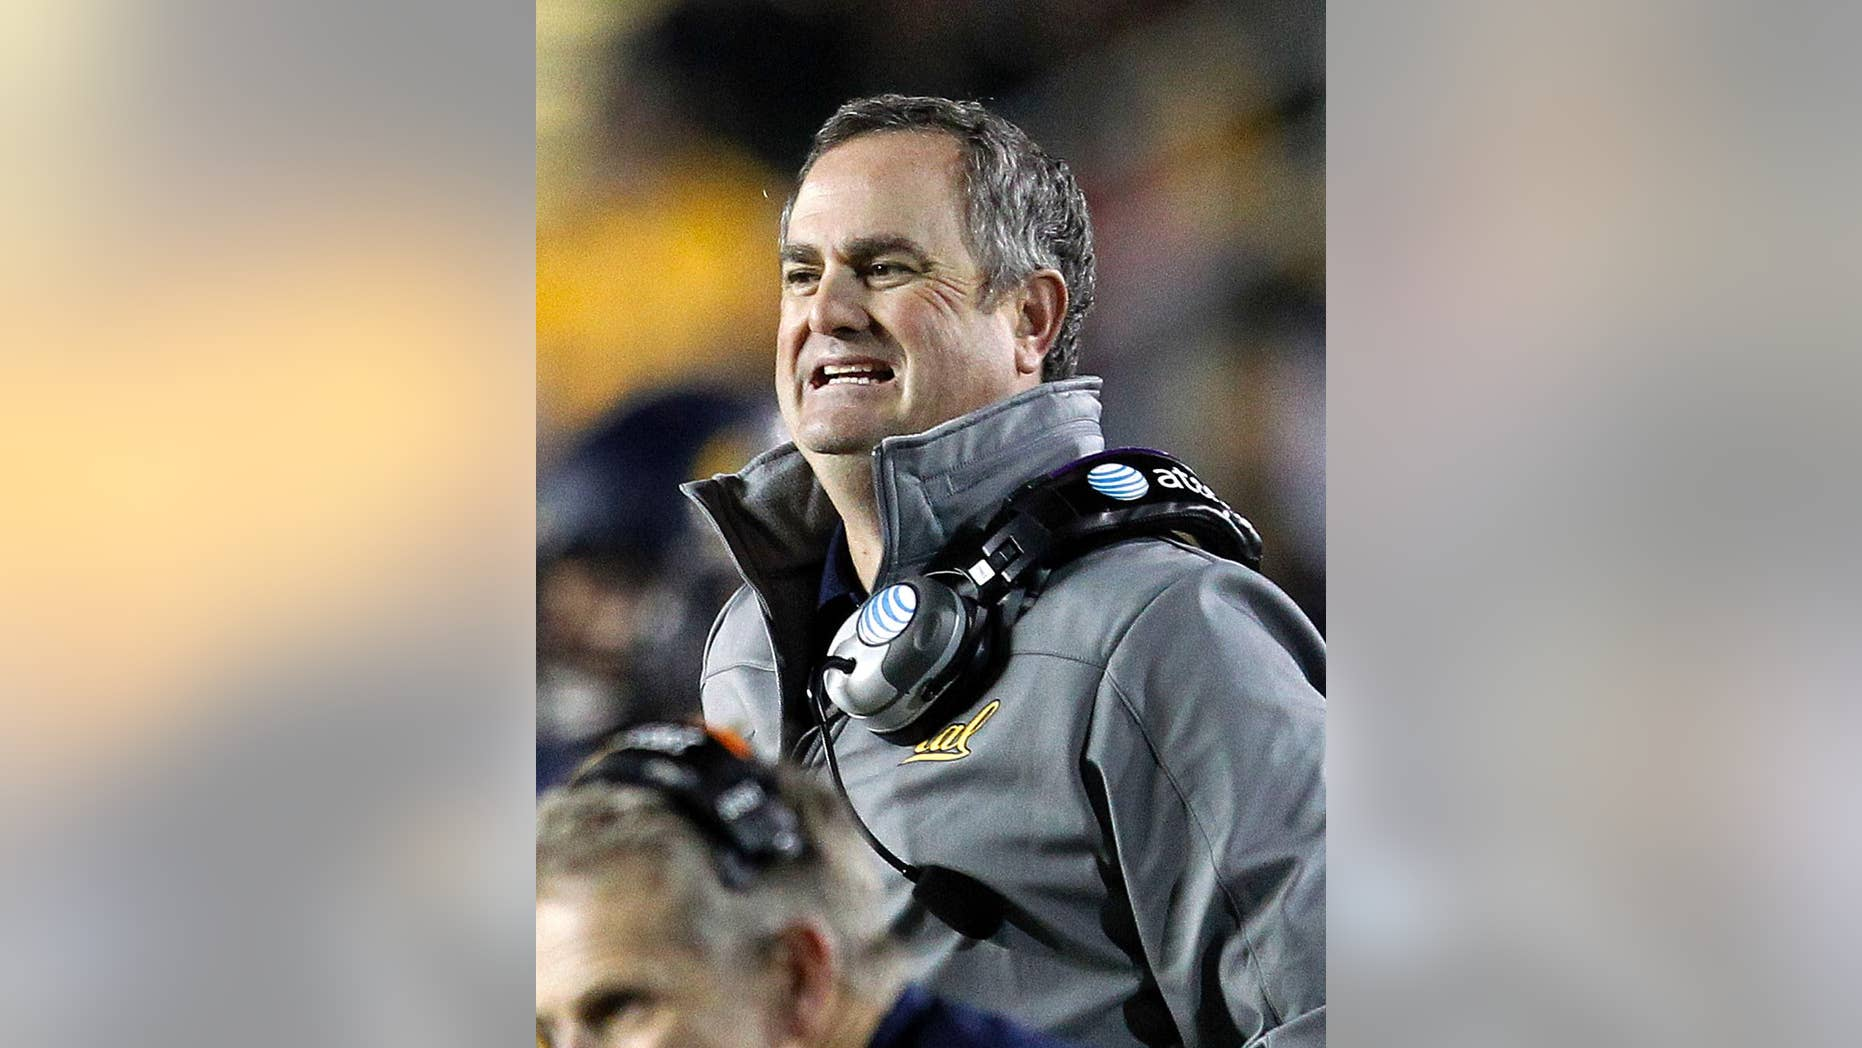 FILE - In this Oct. 19, 2013, file photo, California head coach Sonny Dykes reacts on the sidelines against Oregon State during an NCAA college football game in Berkeley, Calif. The difference in attitude at California is stark heading into coach Dykes' second season. The players are excited about practice, focused on football and eager to put last season's disappointing one-win campaign far in the past. (AP Photo/Tony Avelar,File)